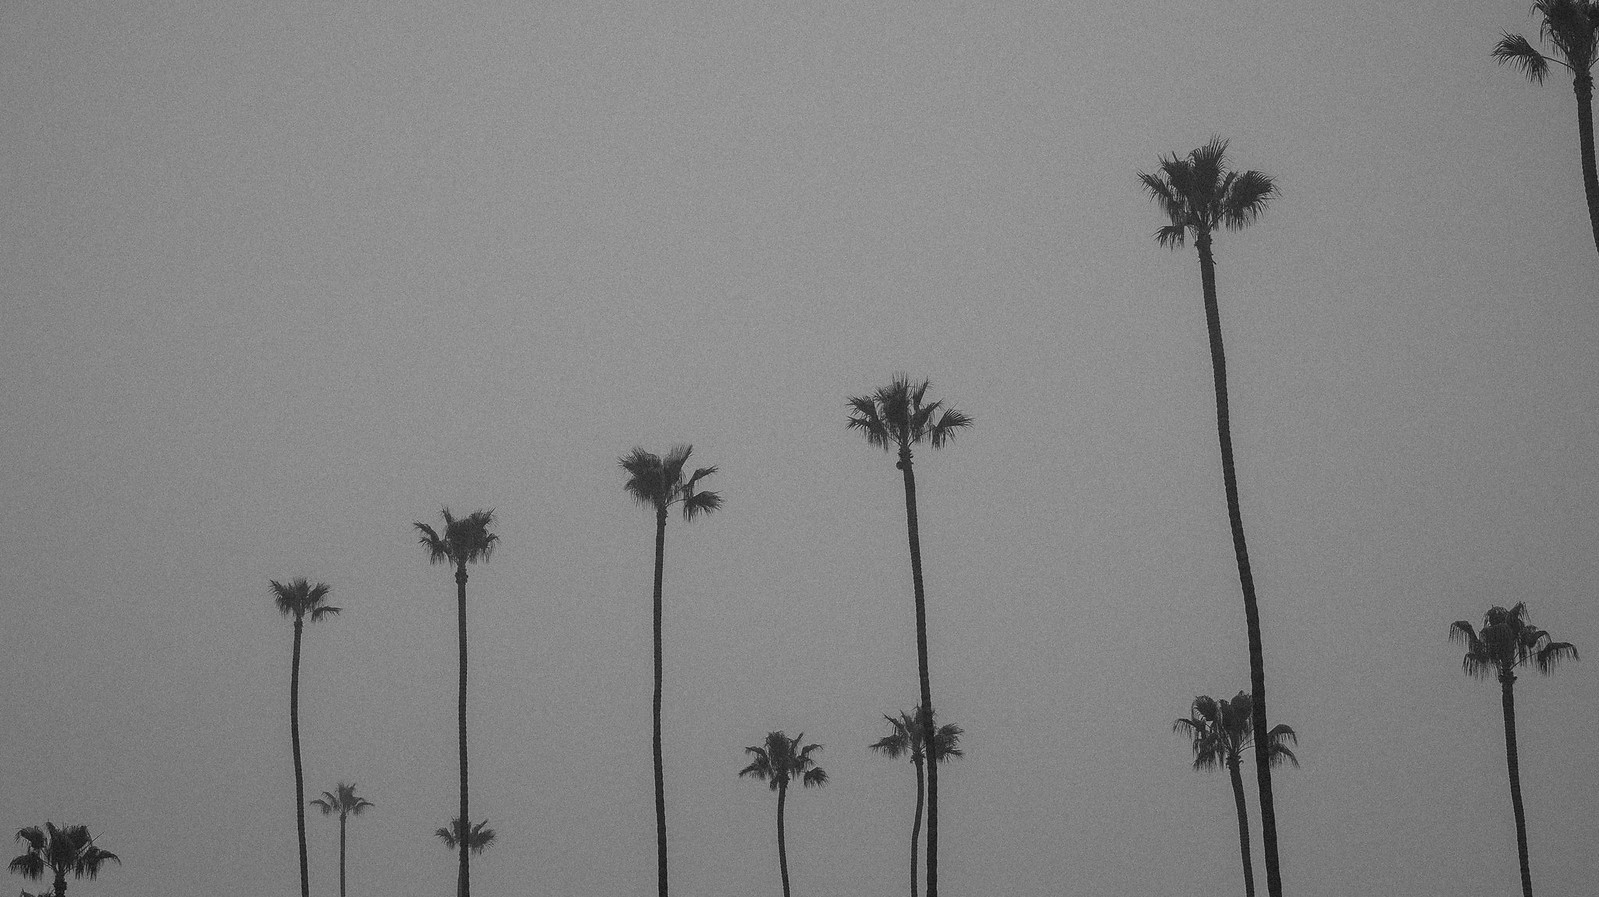 palm trees | by michaelj1998